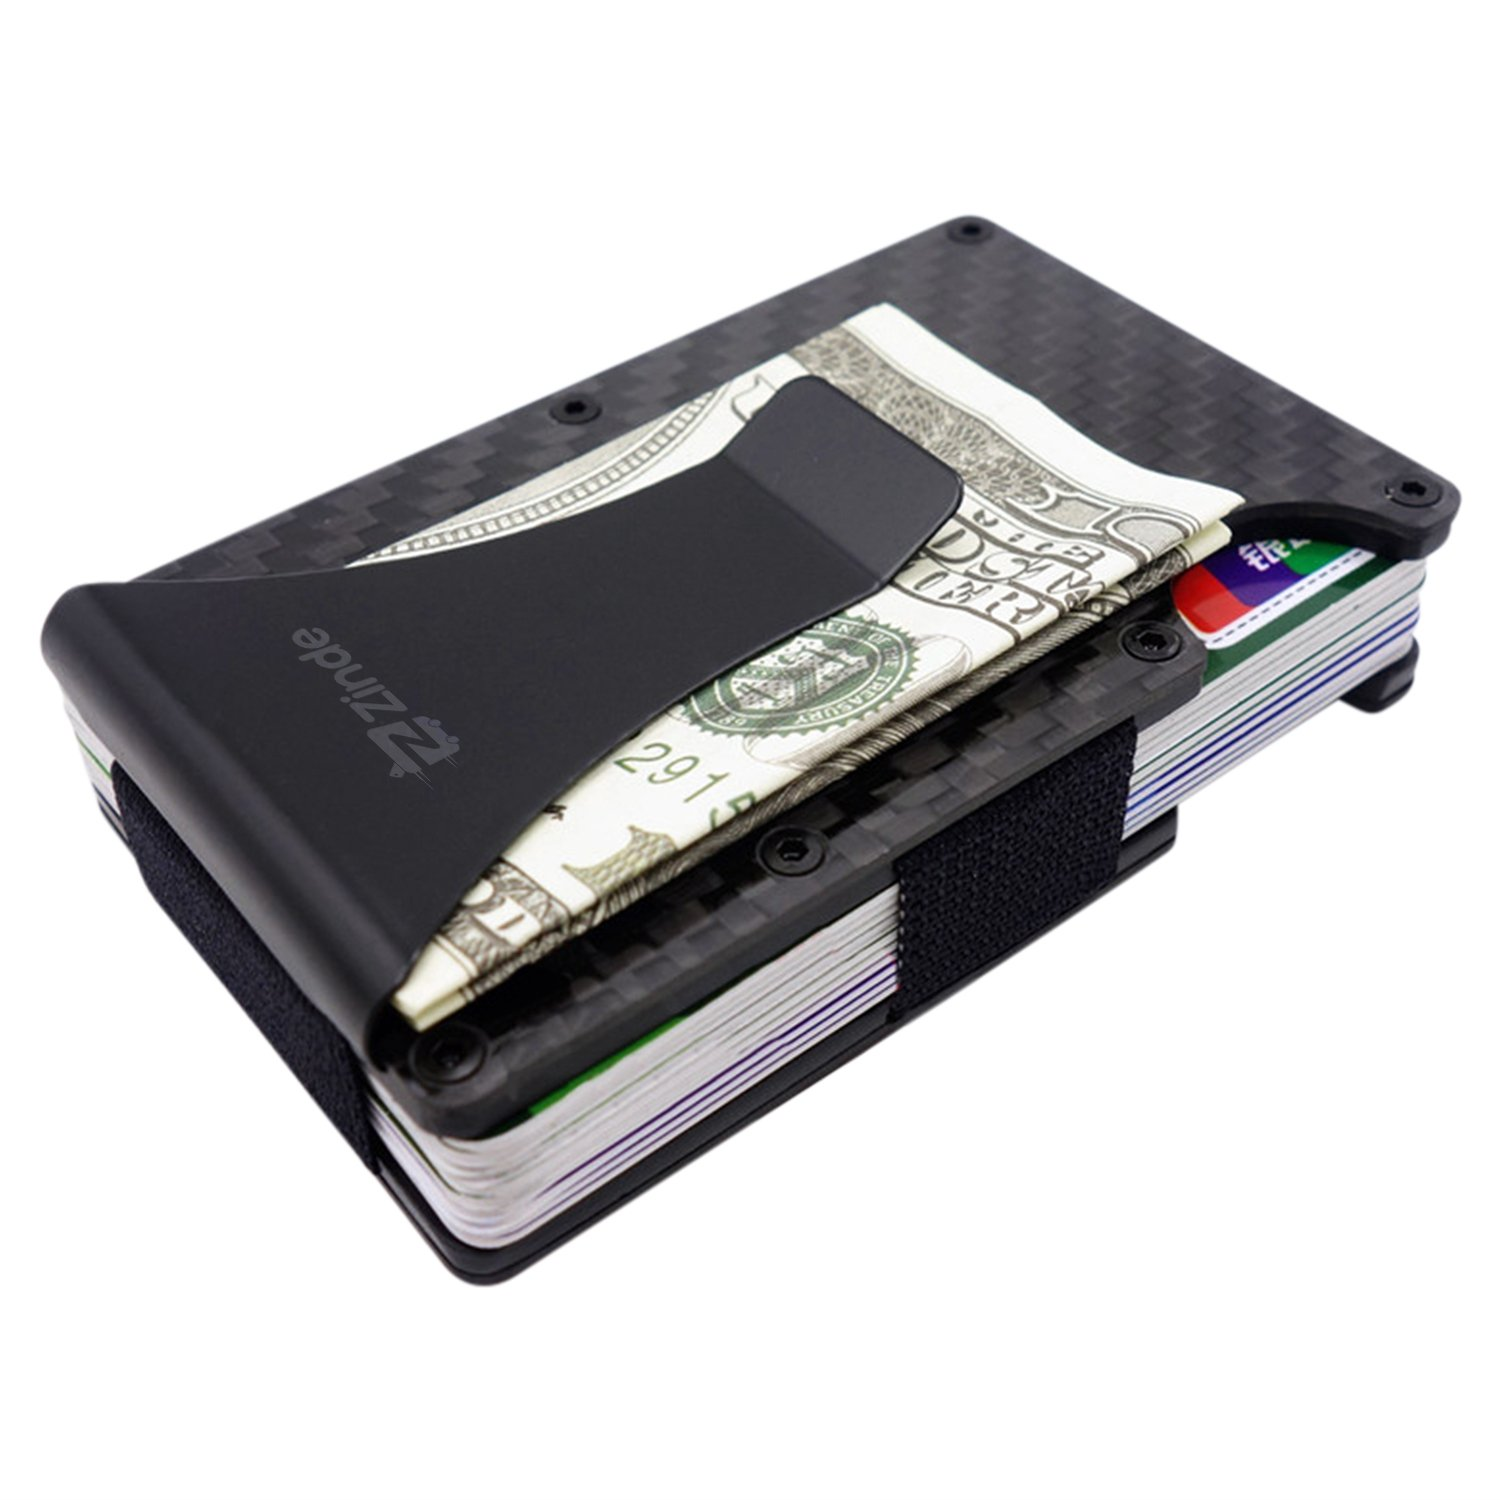 Minimalist Carbon Fiber Wallet by Zinde - Slim RFID Blocking Wallet and Money Clip is Lightweight and fits Nicely in Pockets - securely Holds ID and Credit Cards - with Bonus Keychain